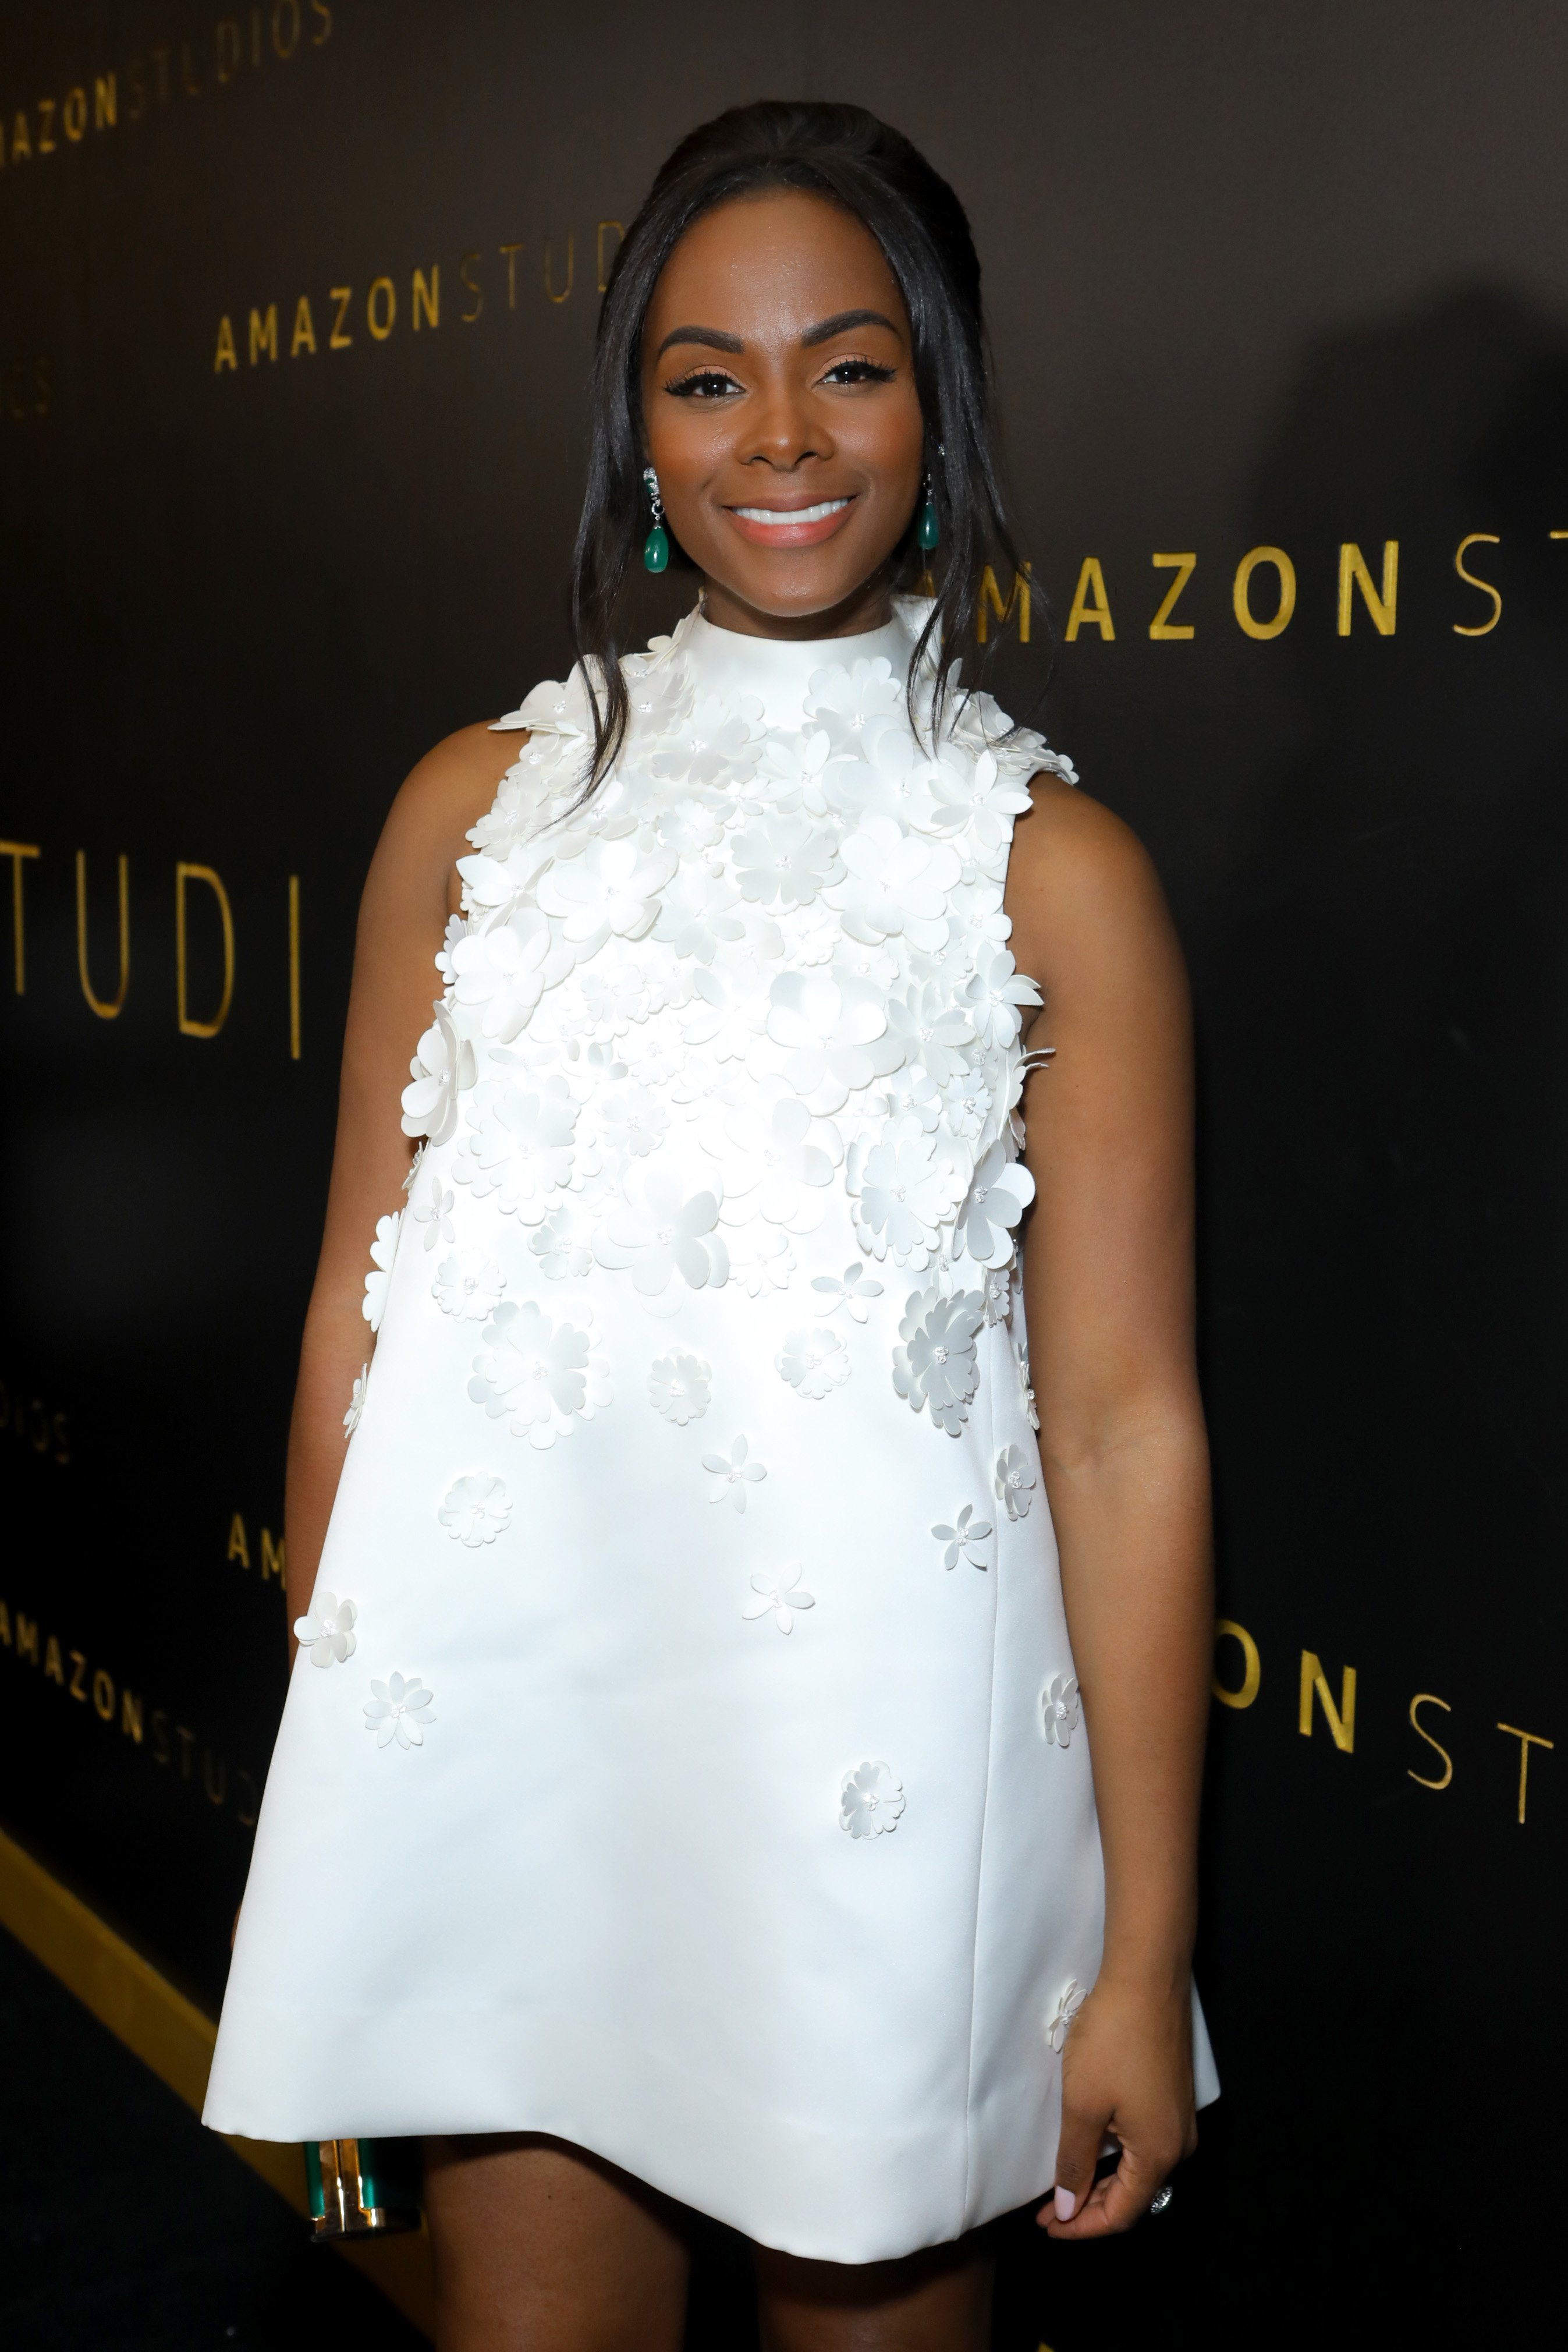 Tika Sumpter at the Amazon Studios Golden Globes After Party on Jan. 5, 2020 in California | Photo: Getty Images